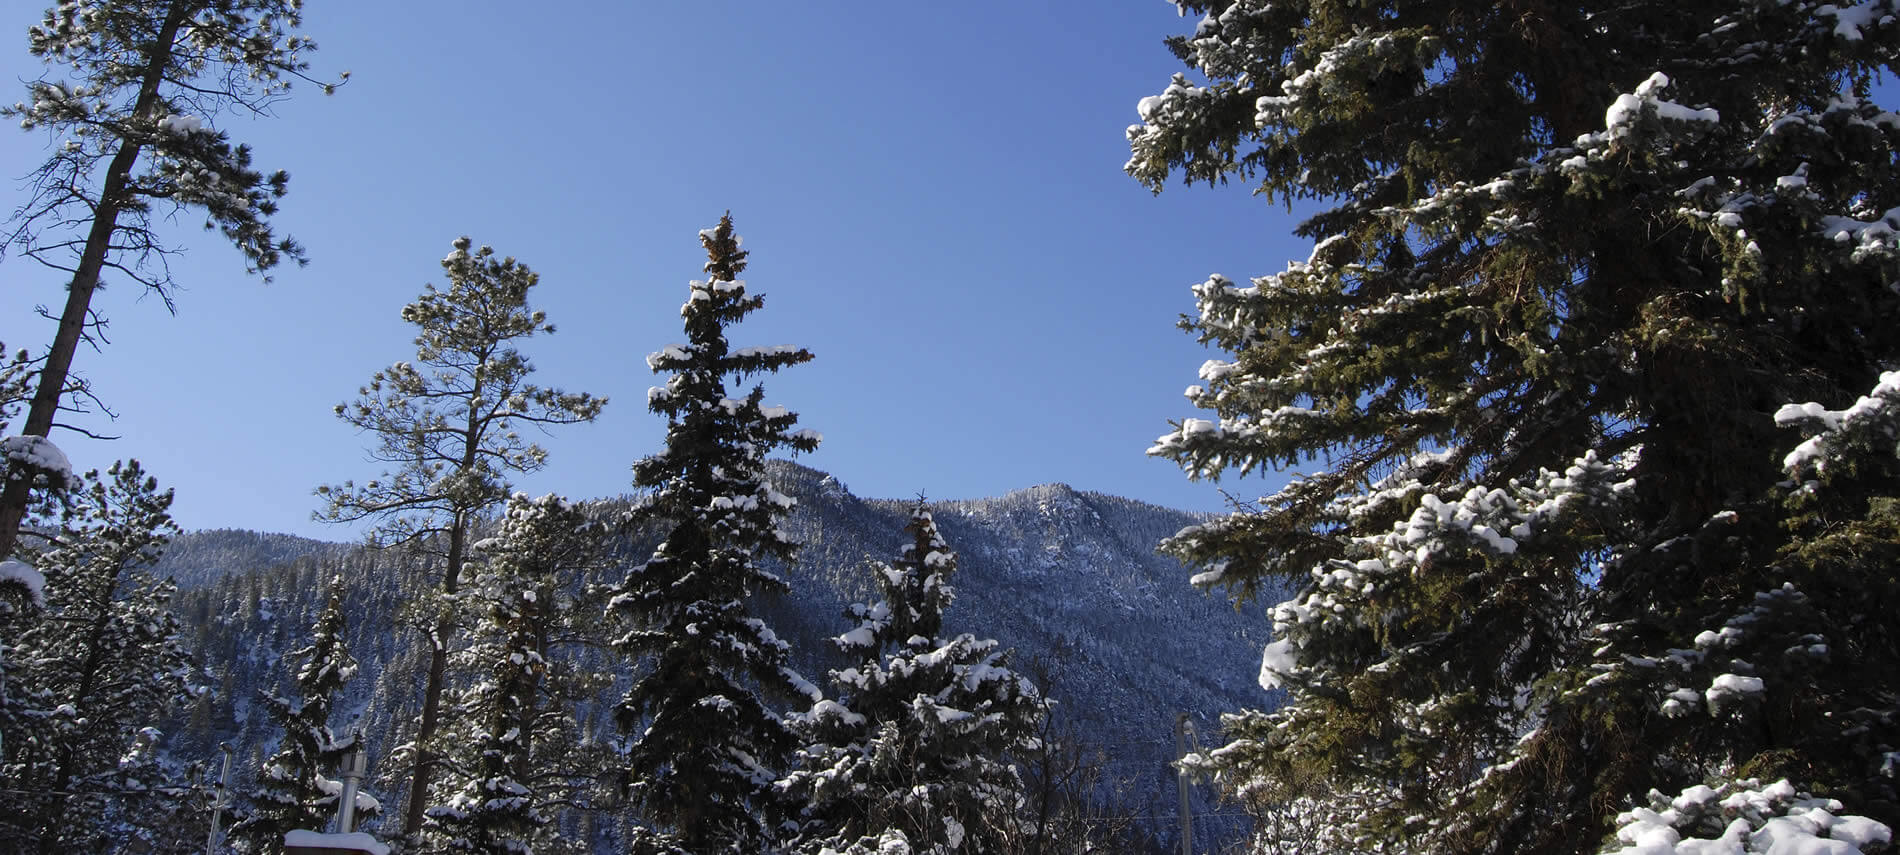 Snowcapped dark green pine trees in the forefront and trees covered mountains and blue skies in the background